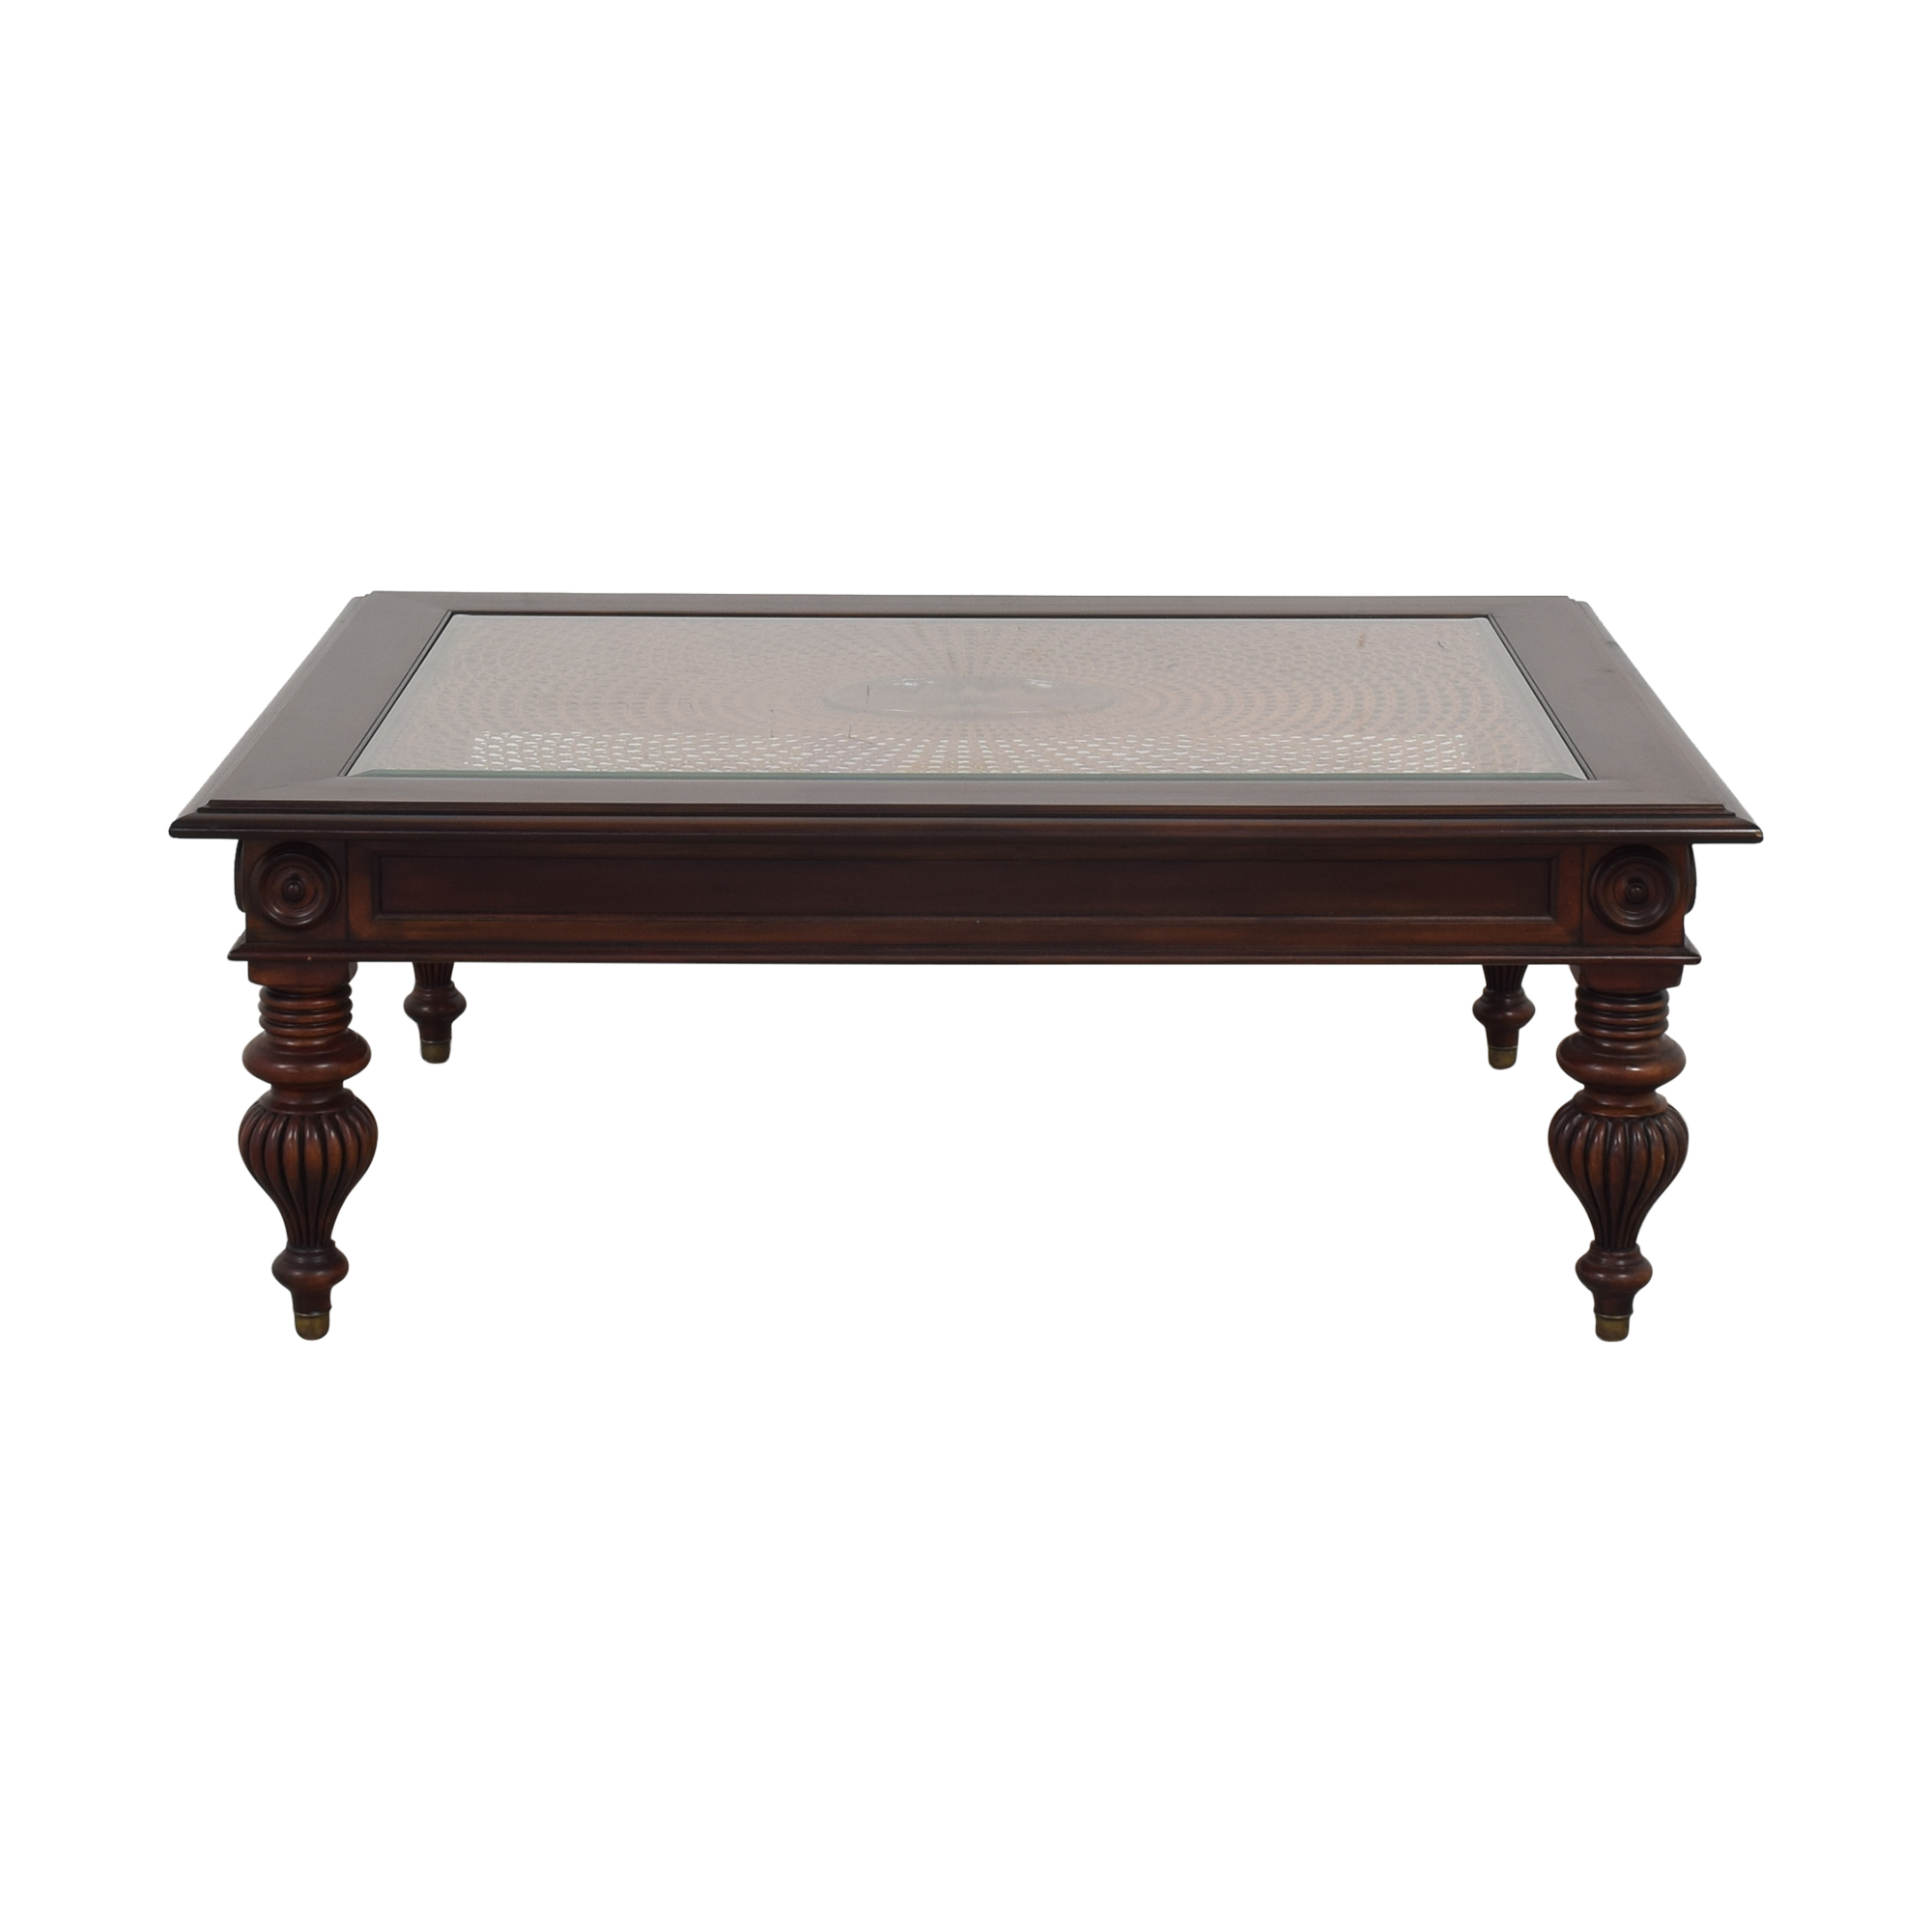 Ethan Allen Ethan Allen British Classic Coffee Table second hand